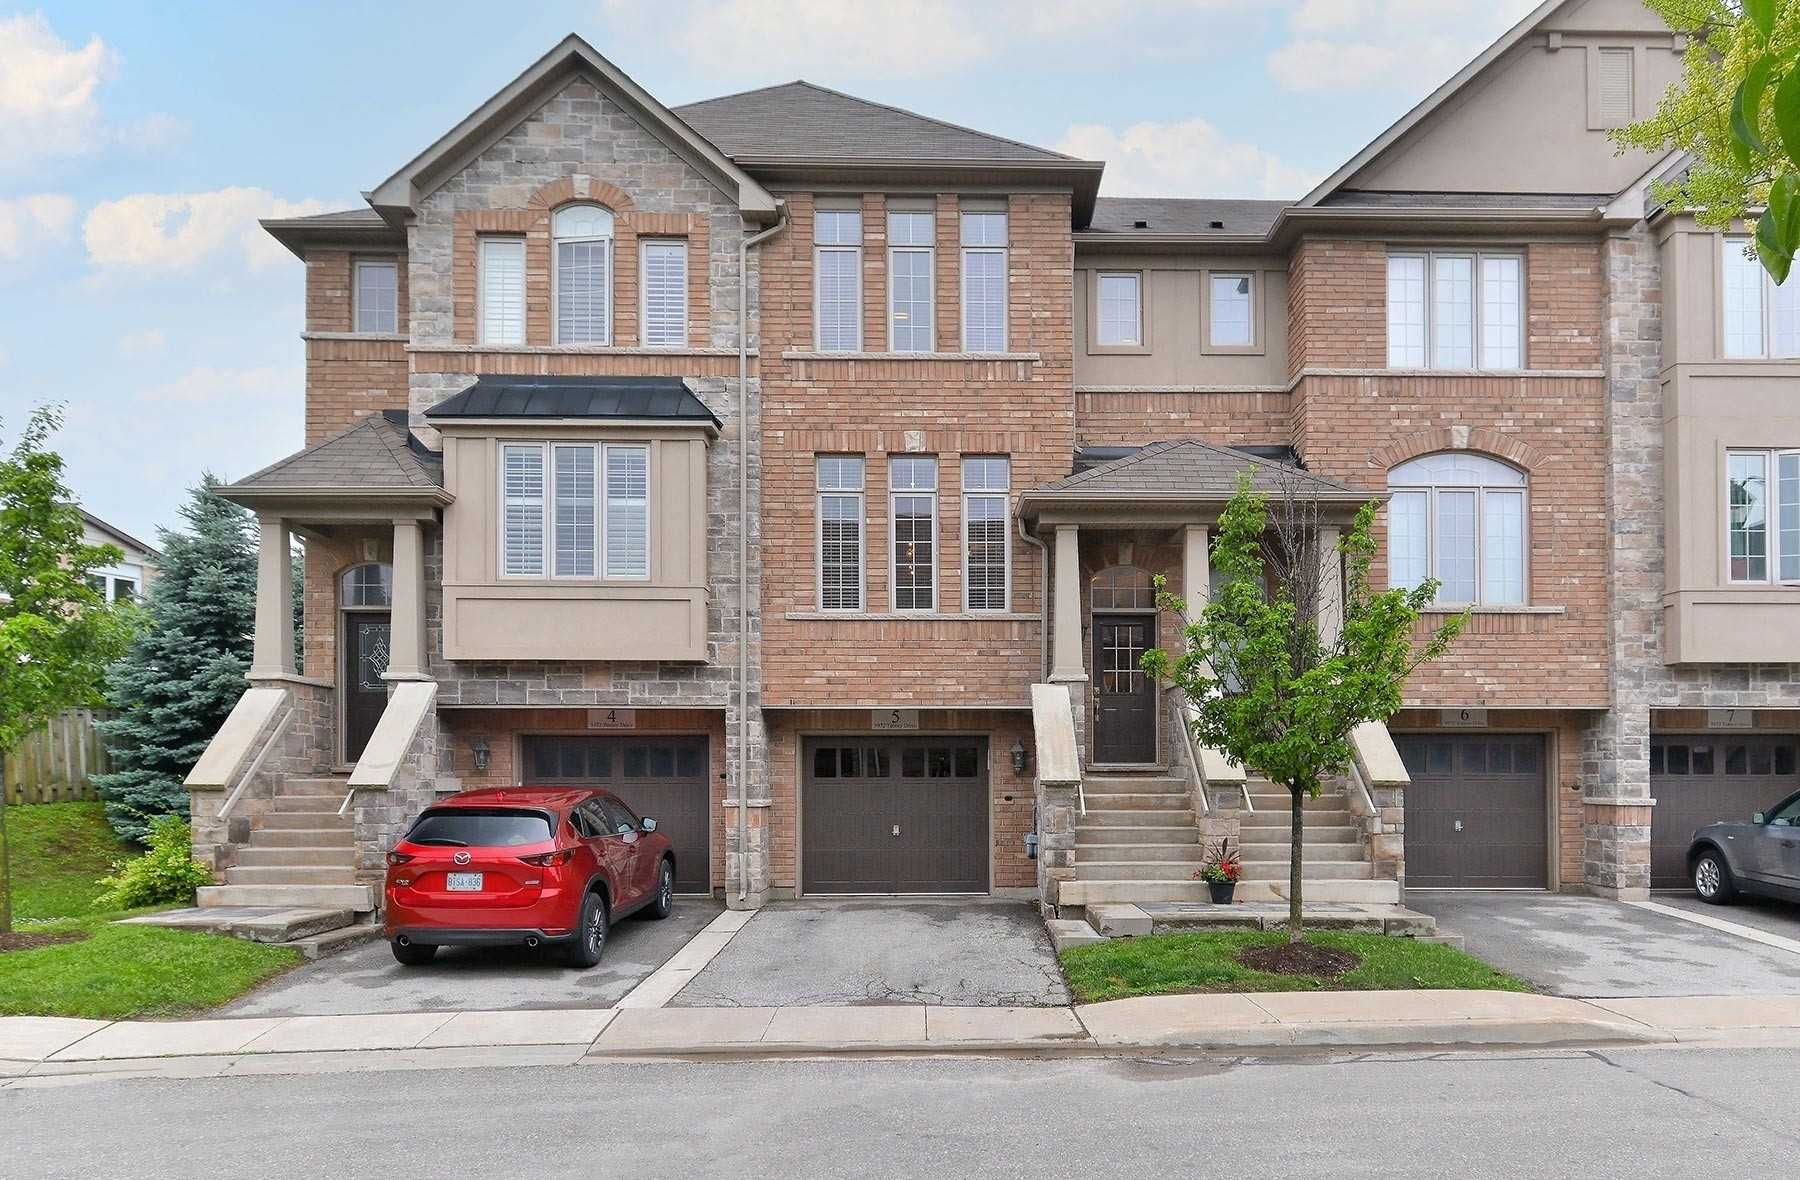 5972 Turney Dr, unit 5 for sale in Toronto - image #1